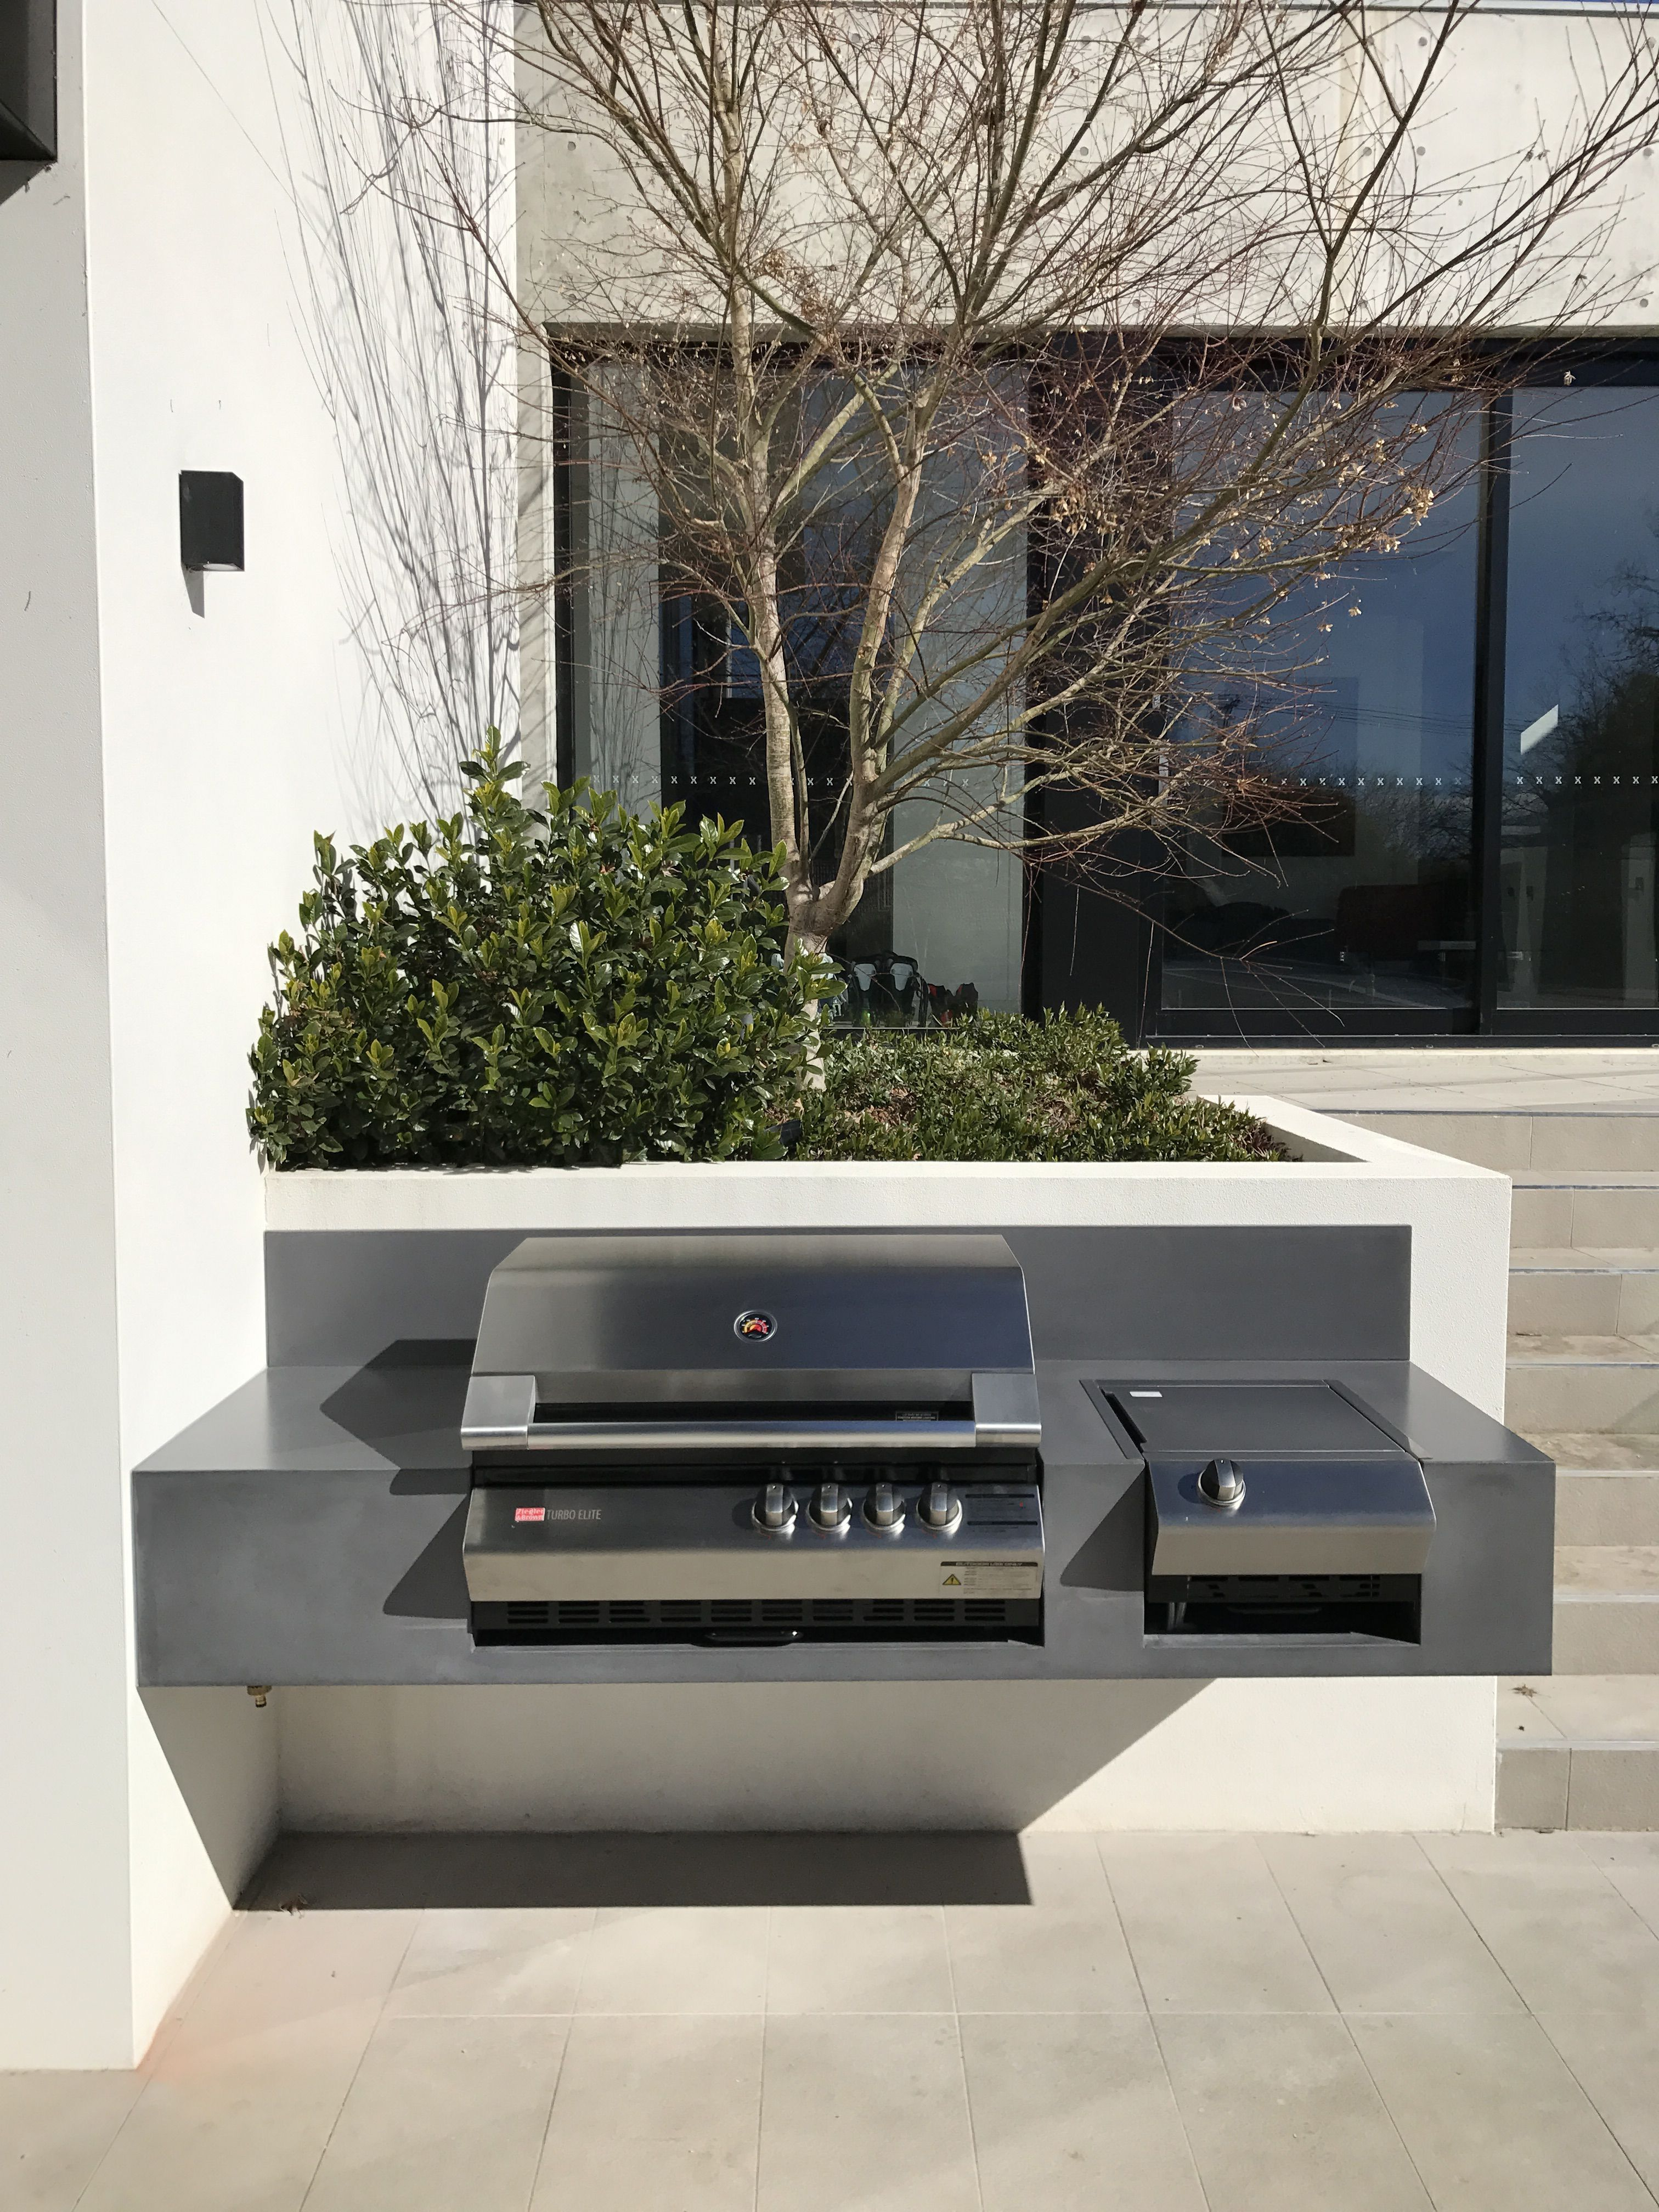 Pin On Outdoor Spaces Modern outdoor bbq designs